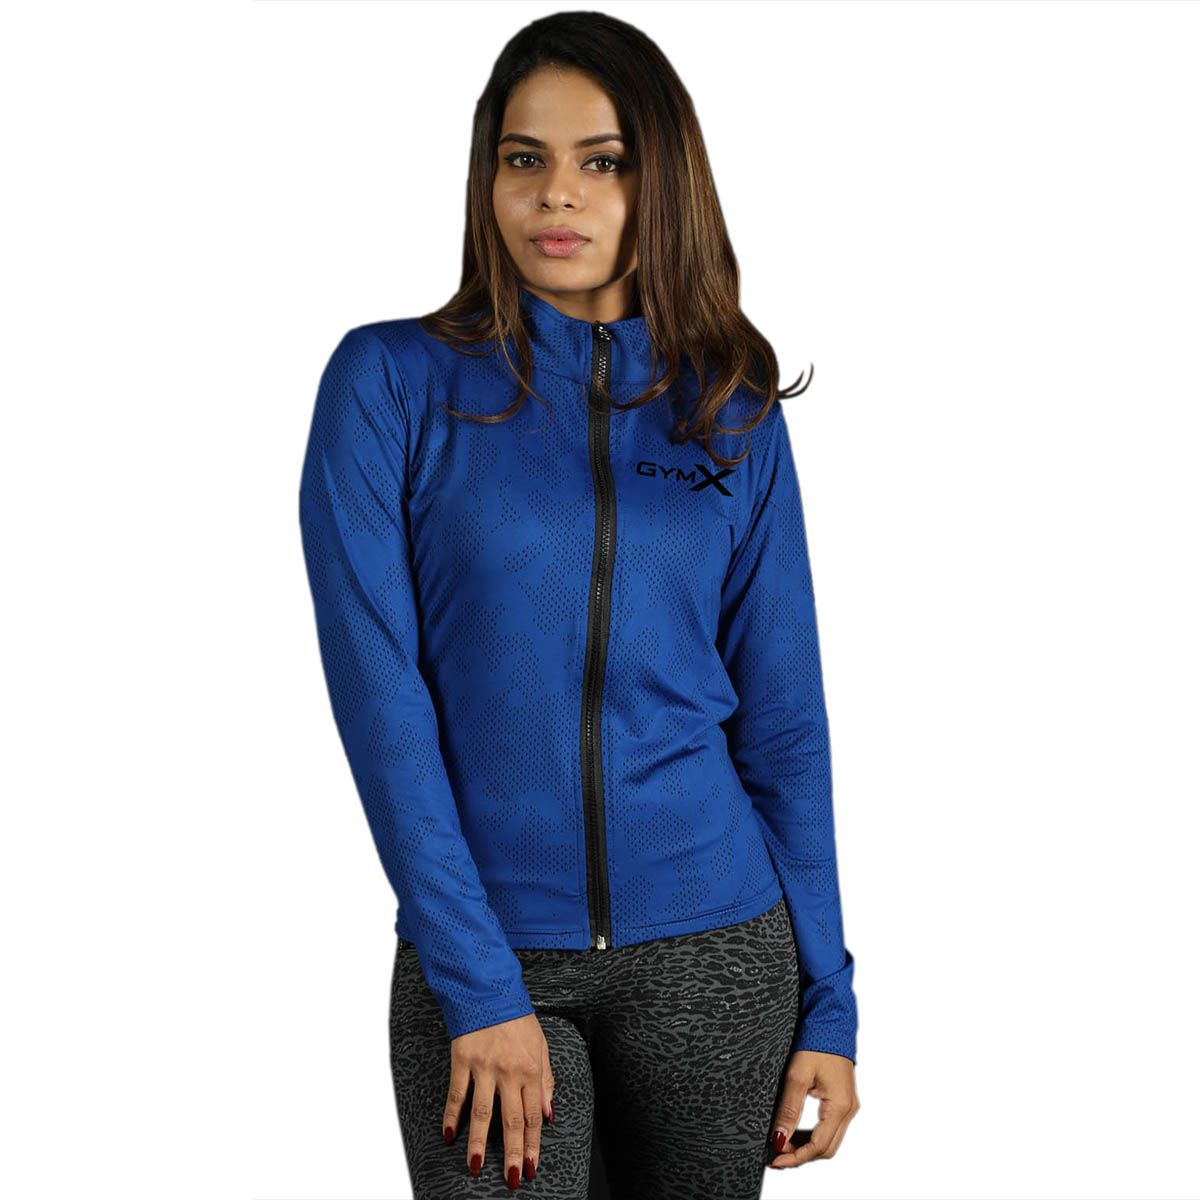 GymX Womens Royal Blue Full Zip Jacket- Athena Series(Size:Large)